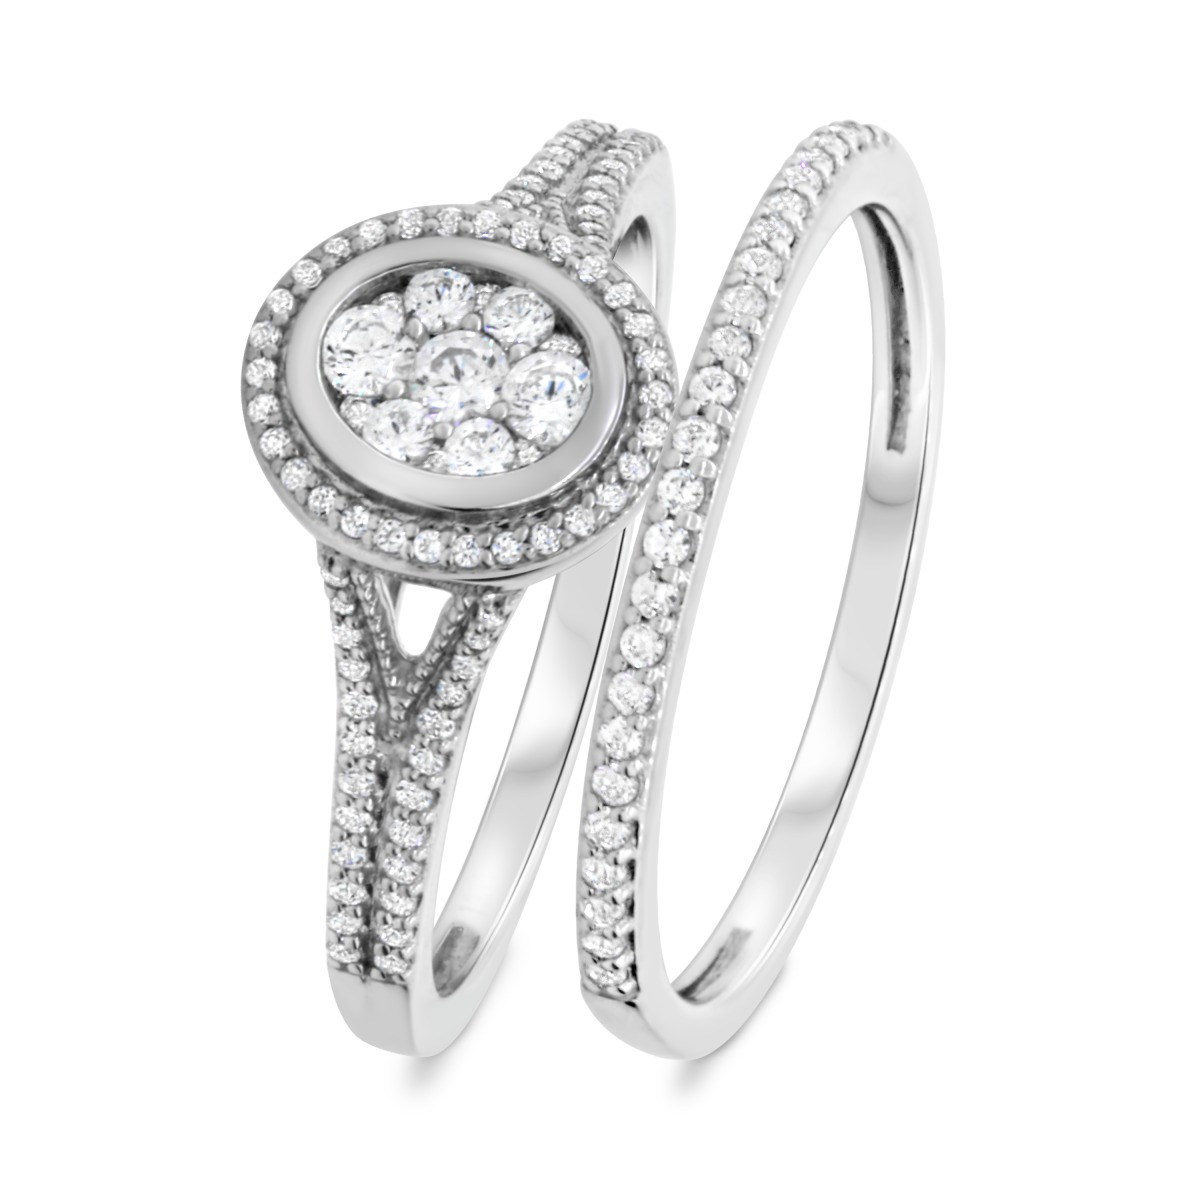 1/2 CT. T.W. Diamond Matching Bridal Ring Set 10K White Gold